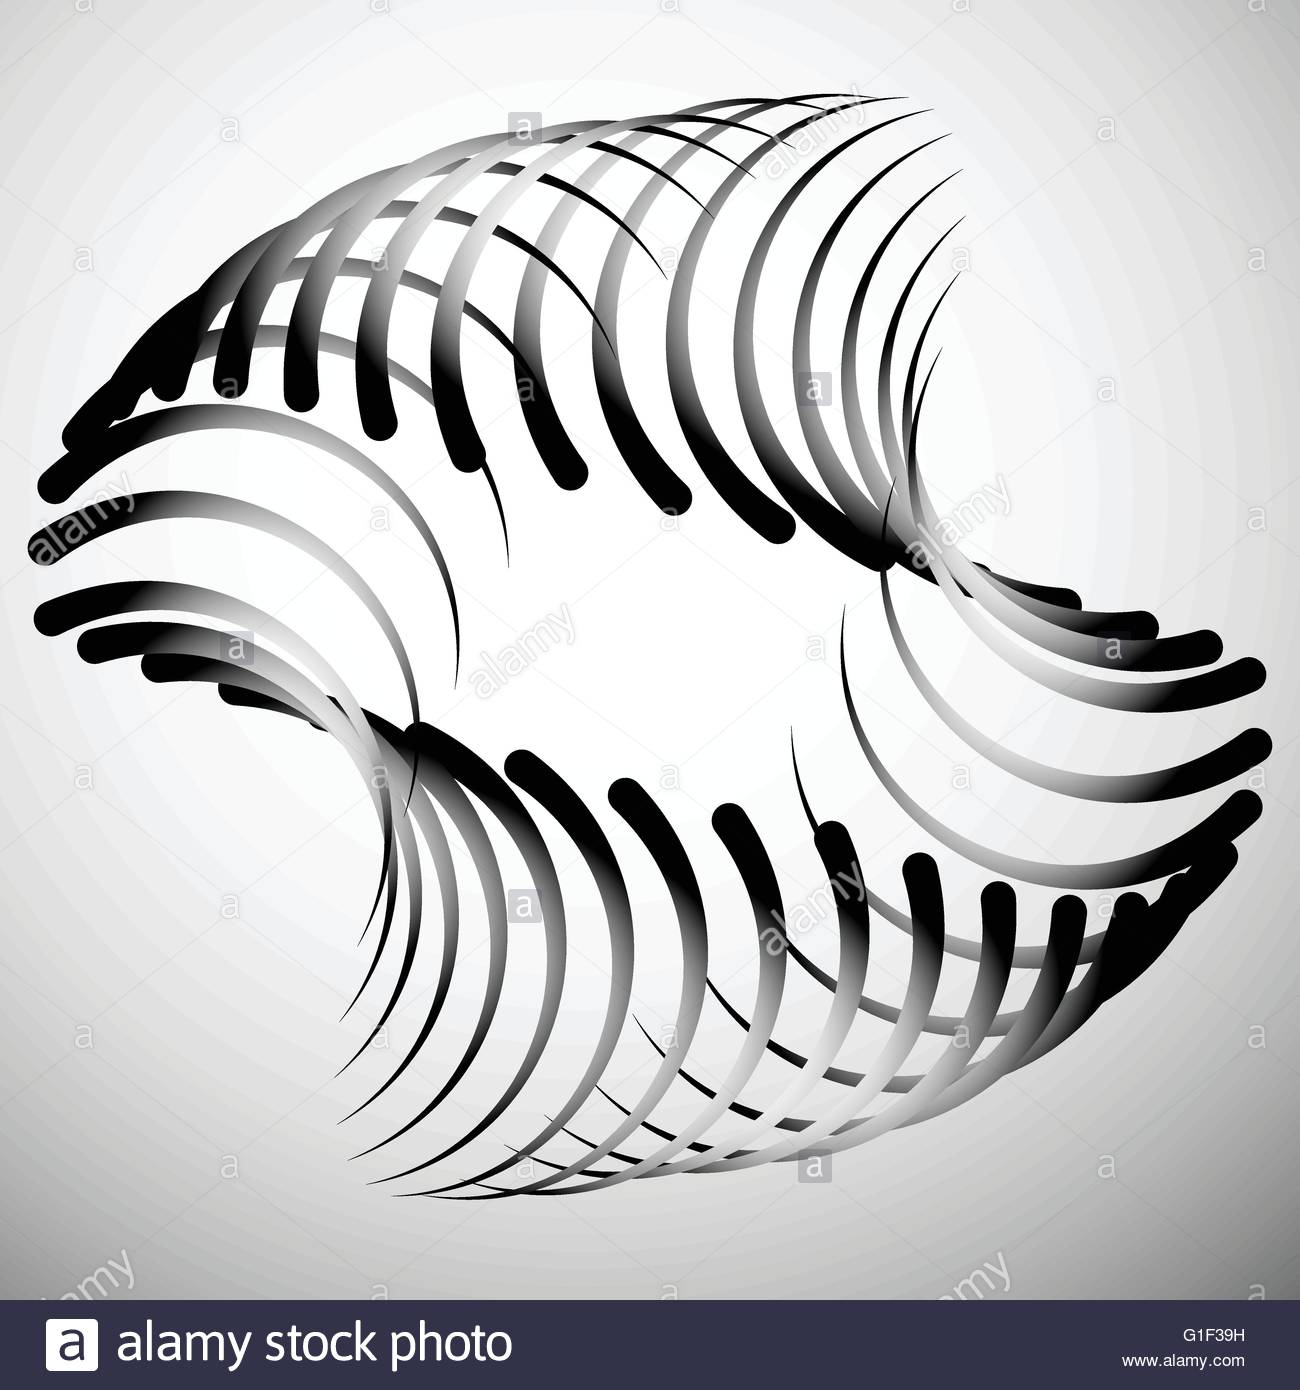 1300x1390 Abstract Element With Intersecting Curved Lines. Grayscale